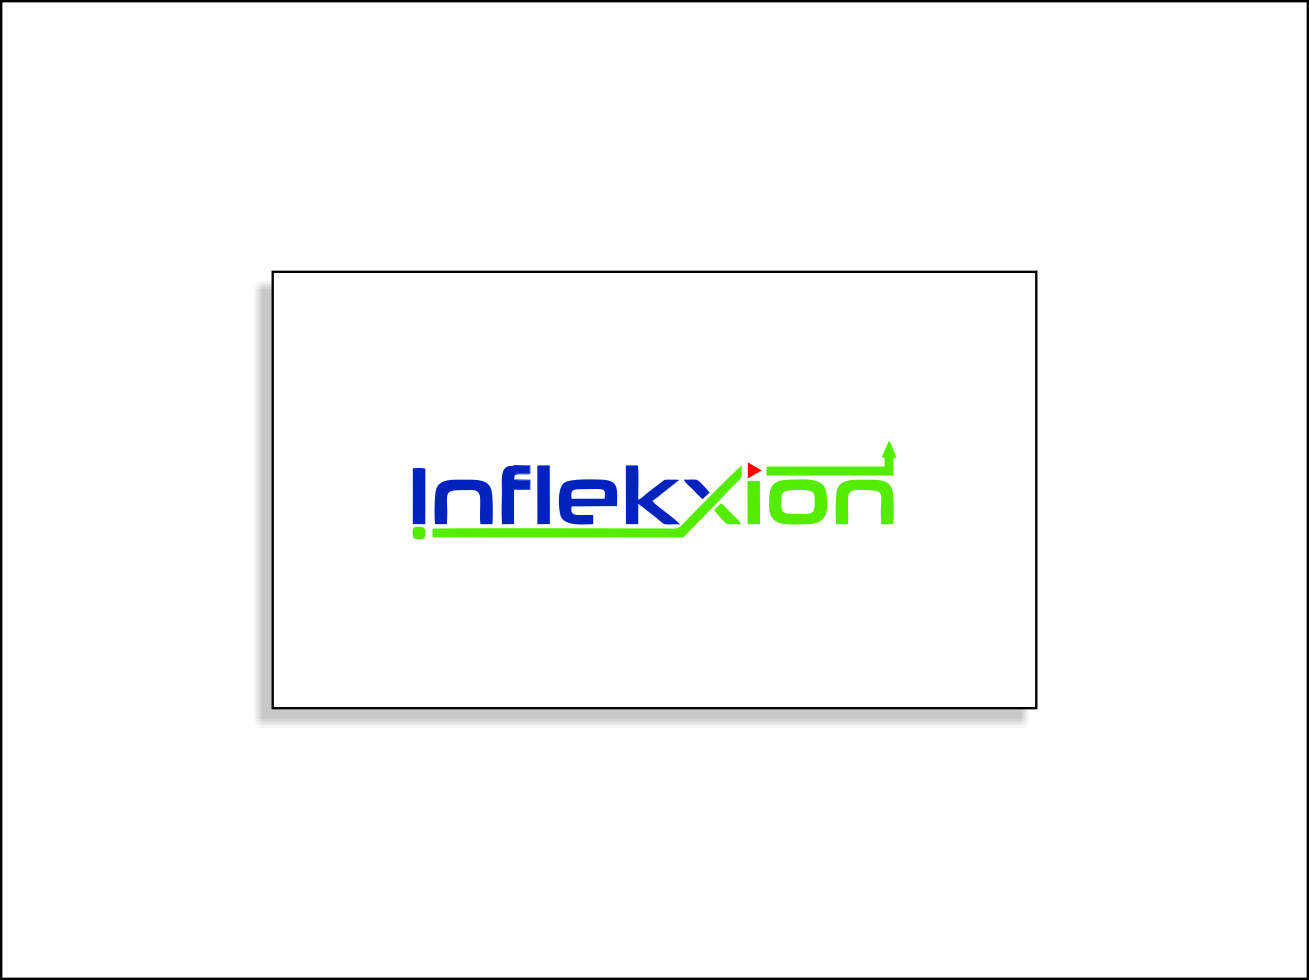 Logo Design by Agus Martoyo - Entry No. 86 in the Logo Design Contest Professional Logo Design for Inflekxion.